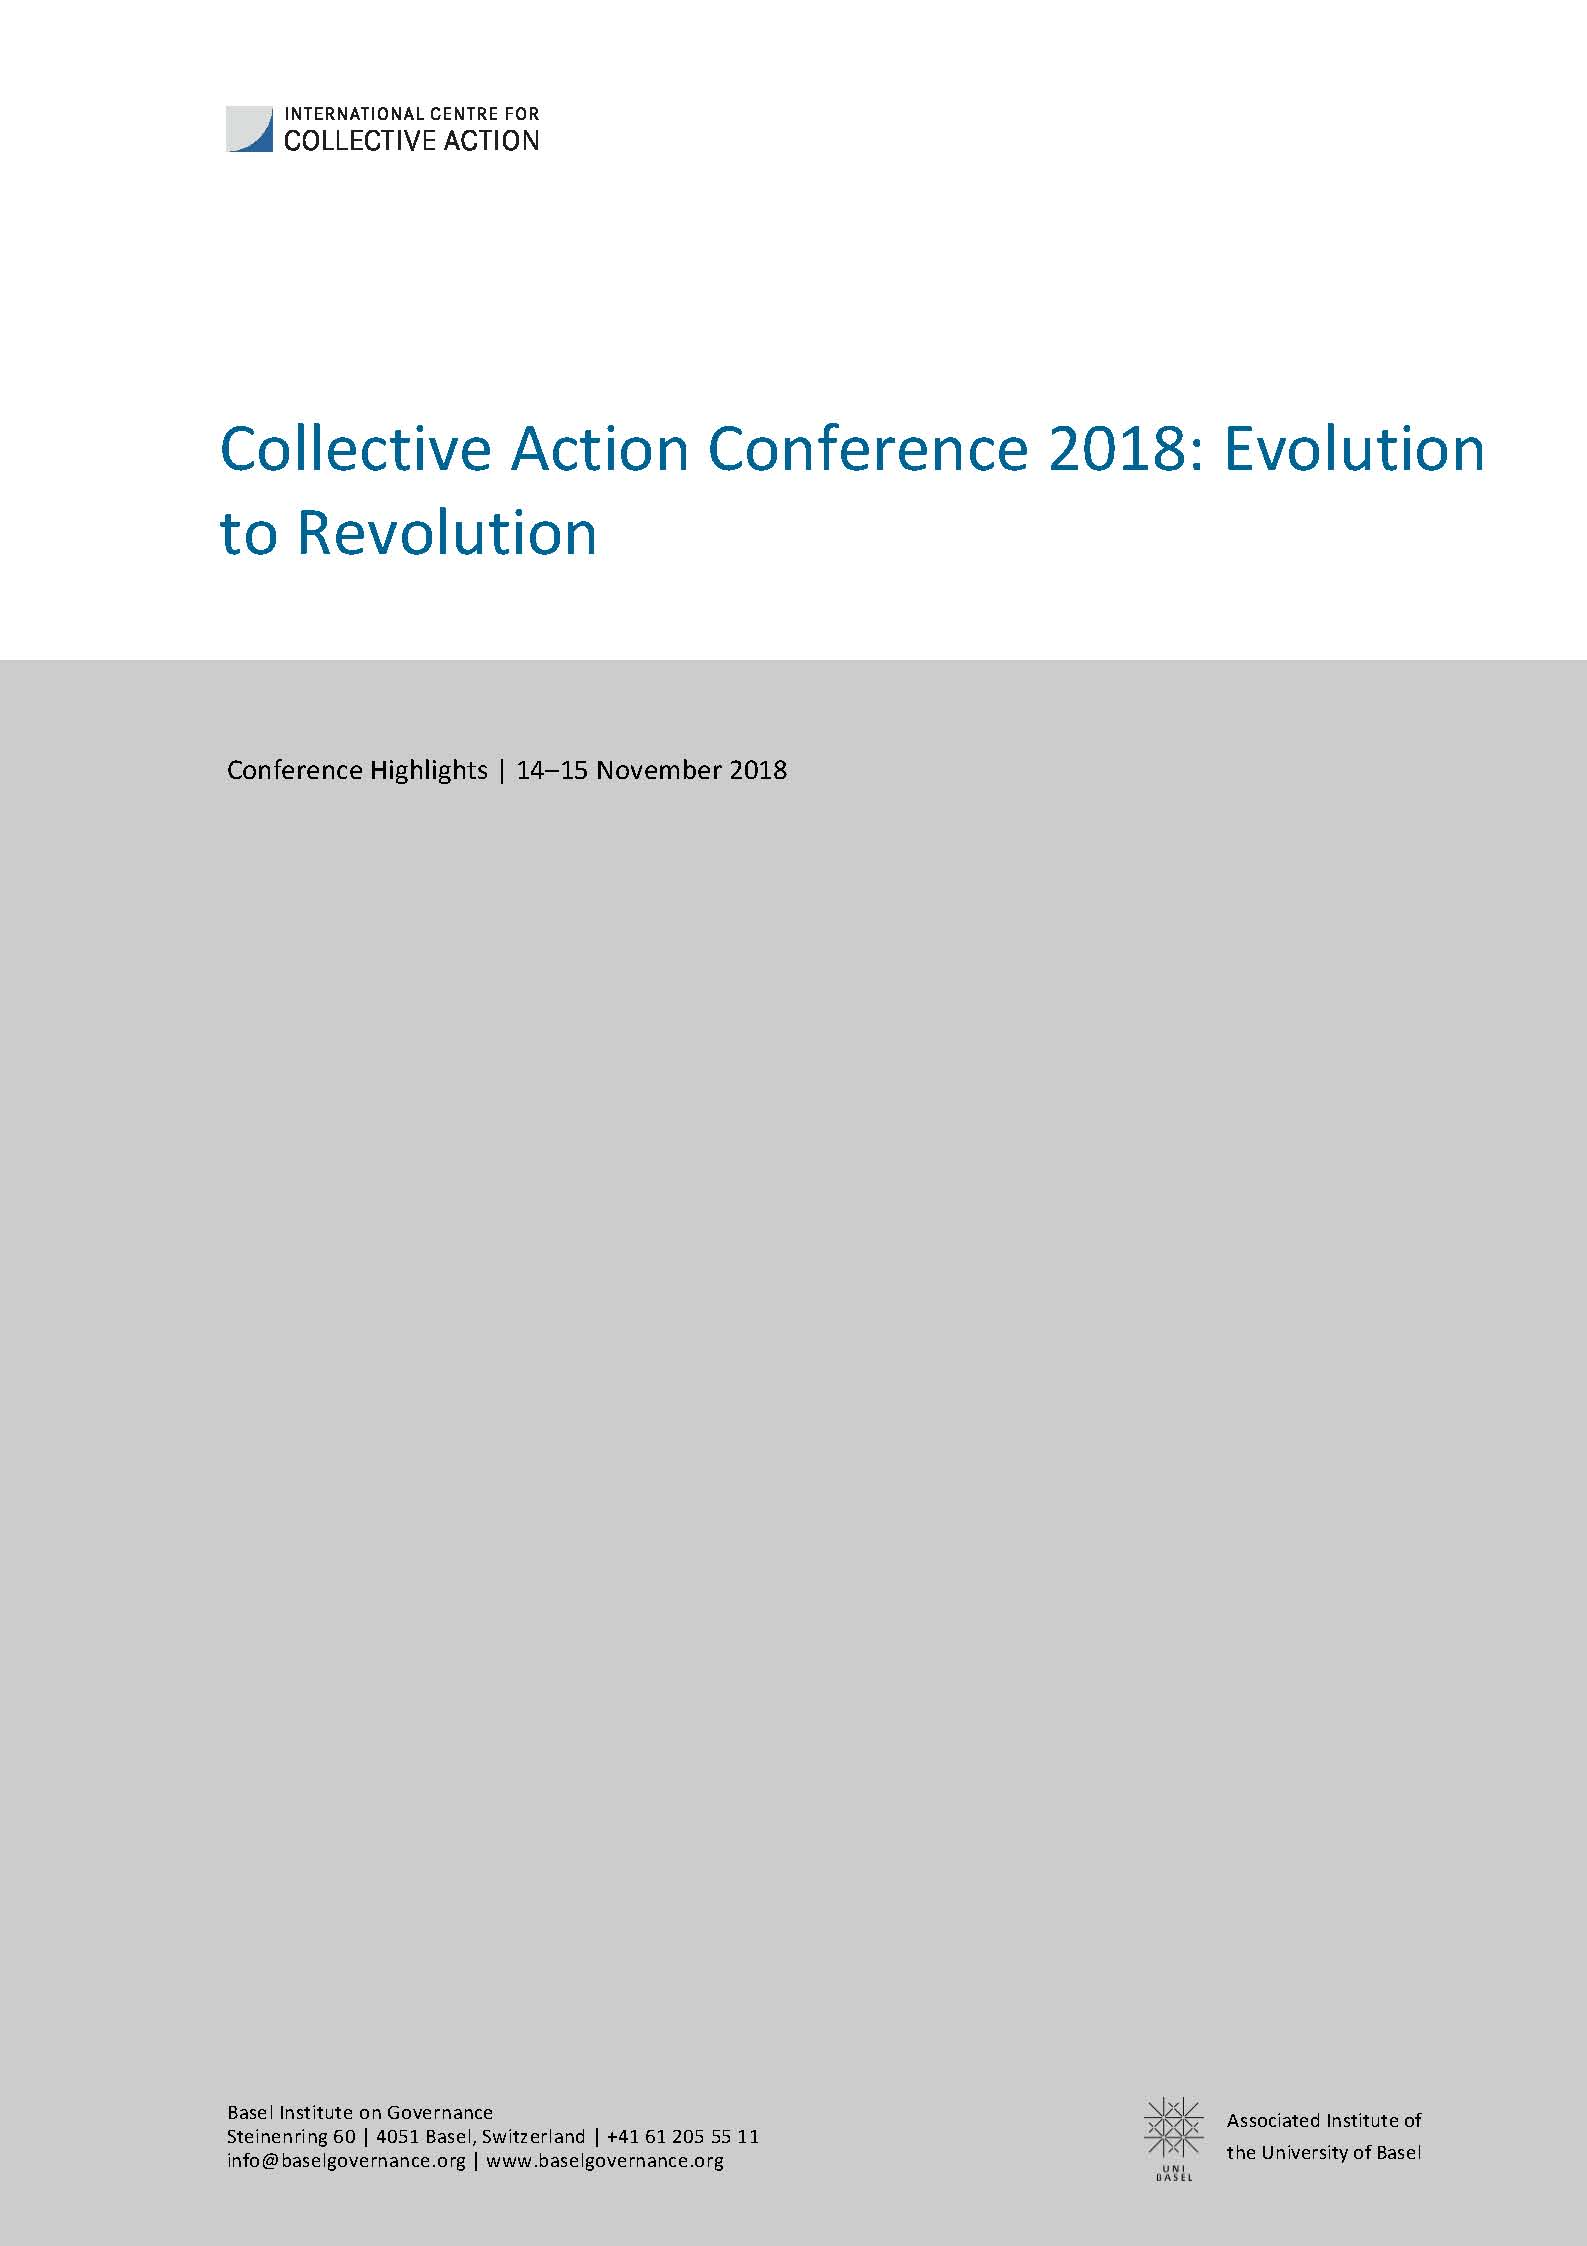 Collective Action Conference highlights cover page